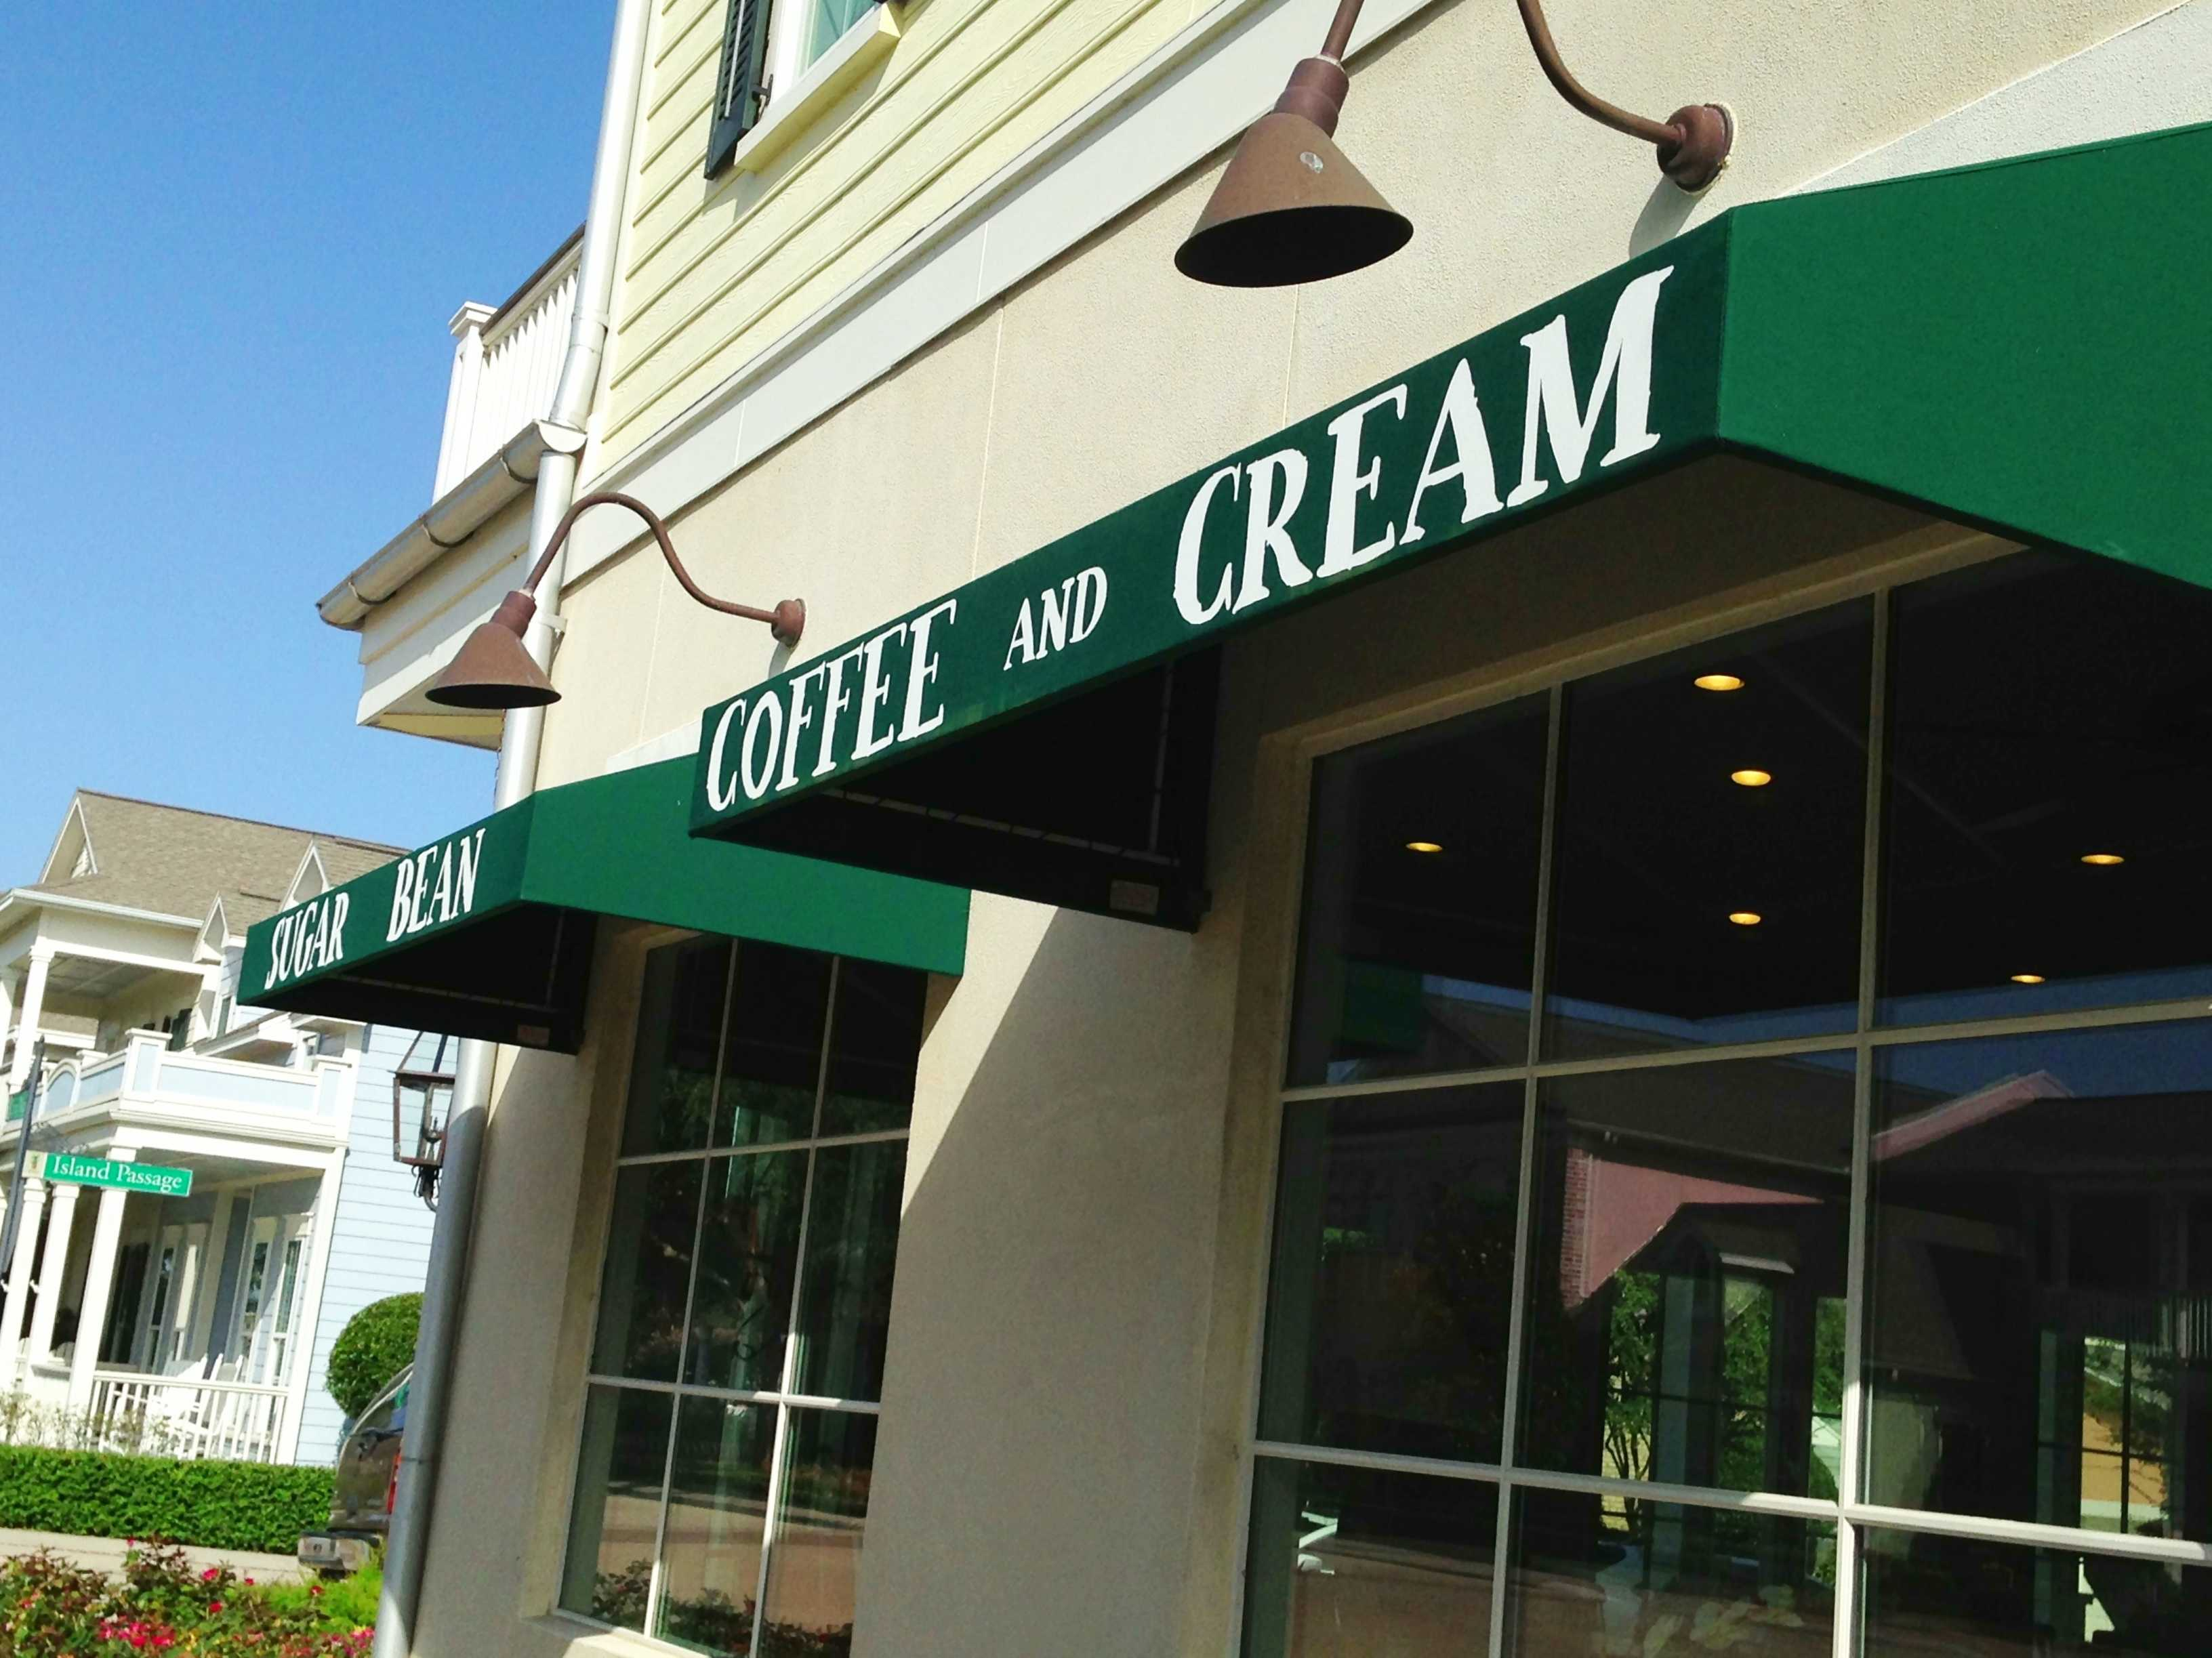 Galveston Coffee Shop: Sugar Bean Coffee and Cream Tour